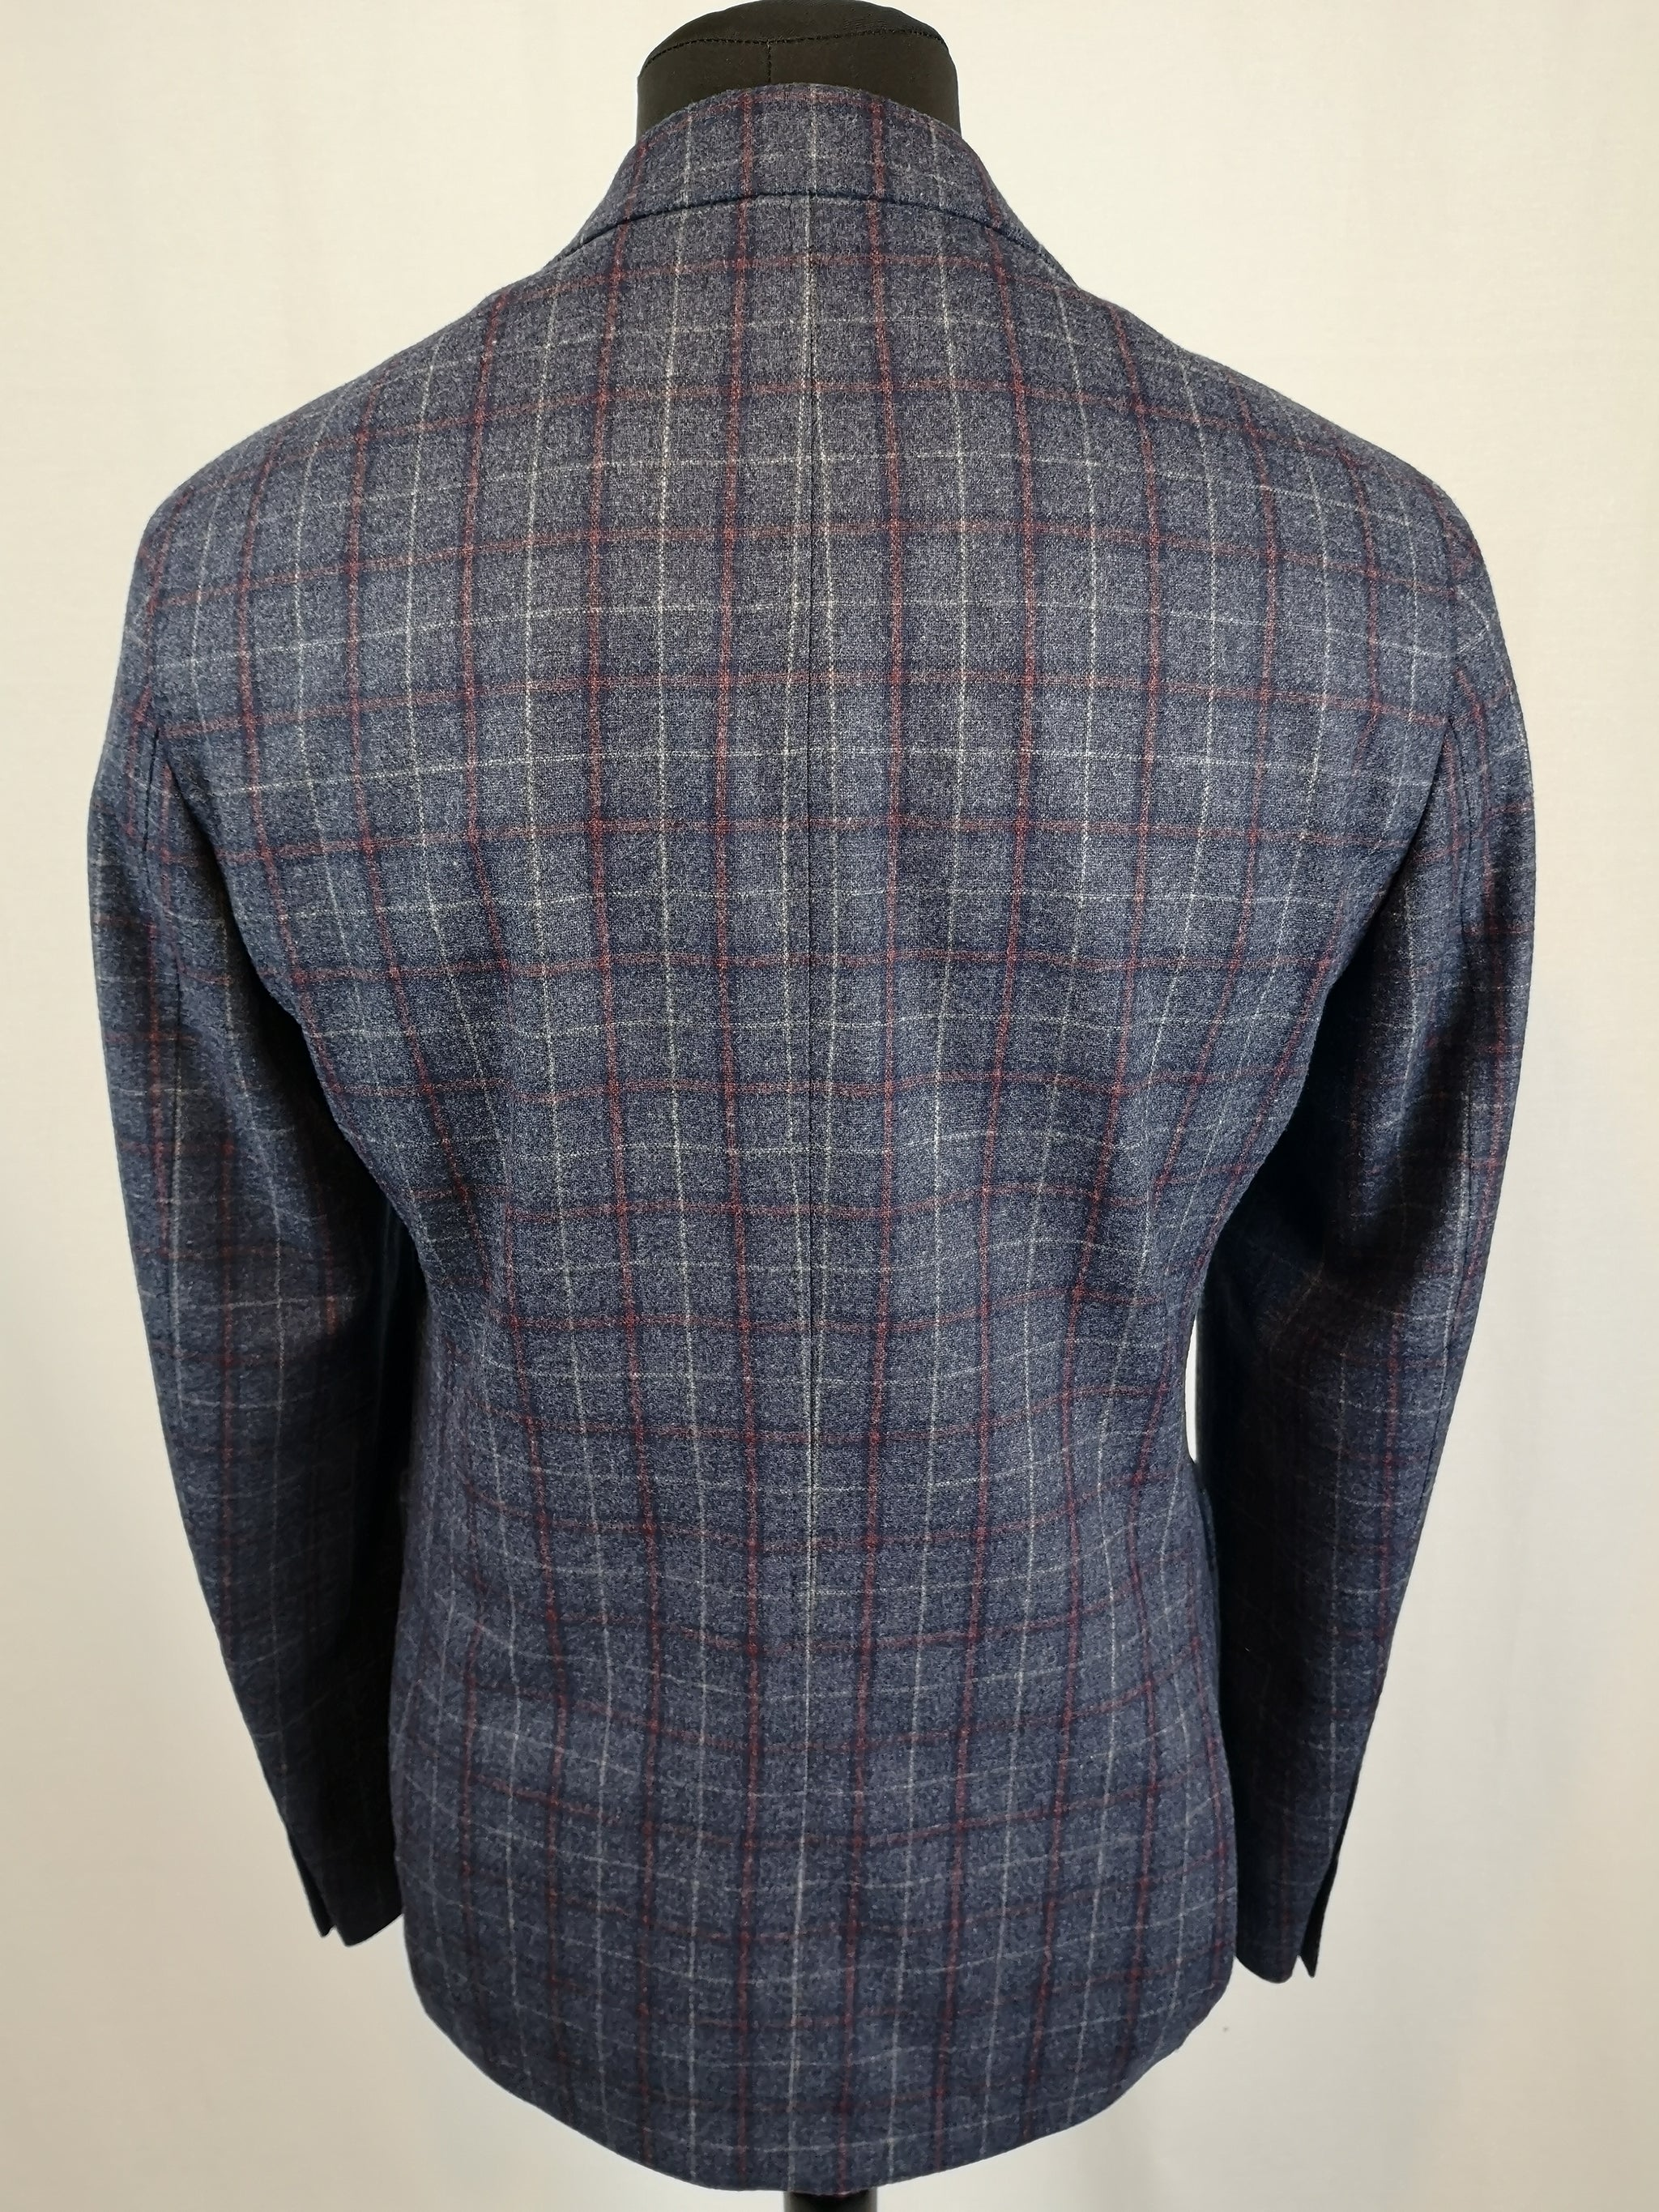 Common Sense - Slim-fit Charcoal Check Jacket